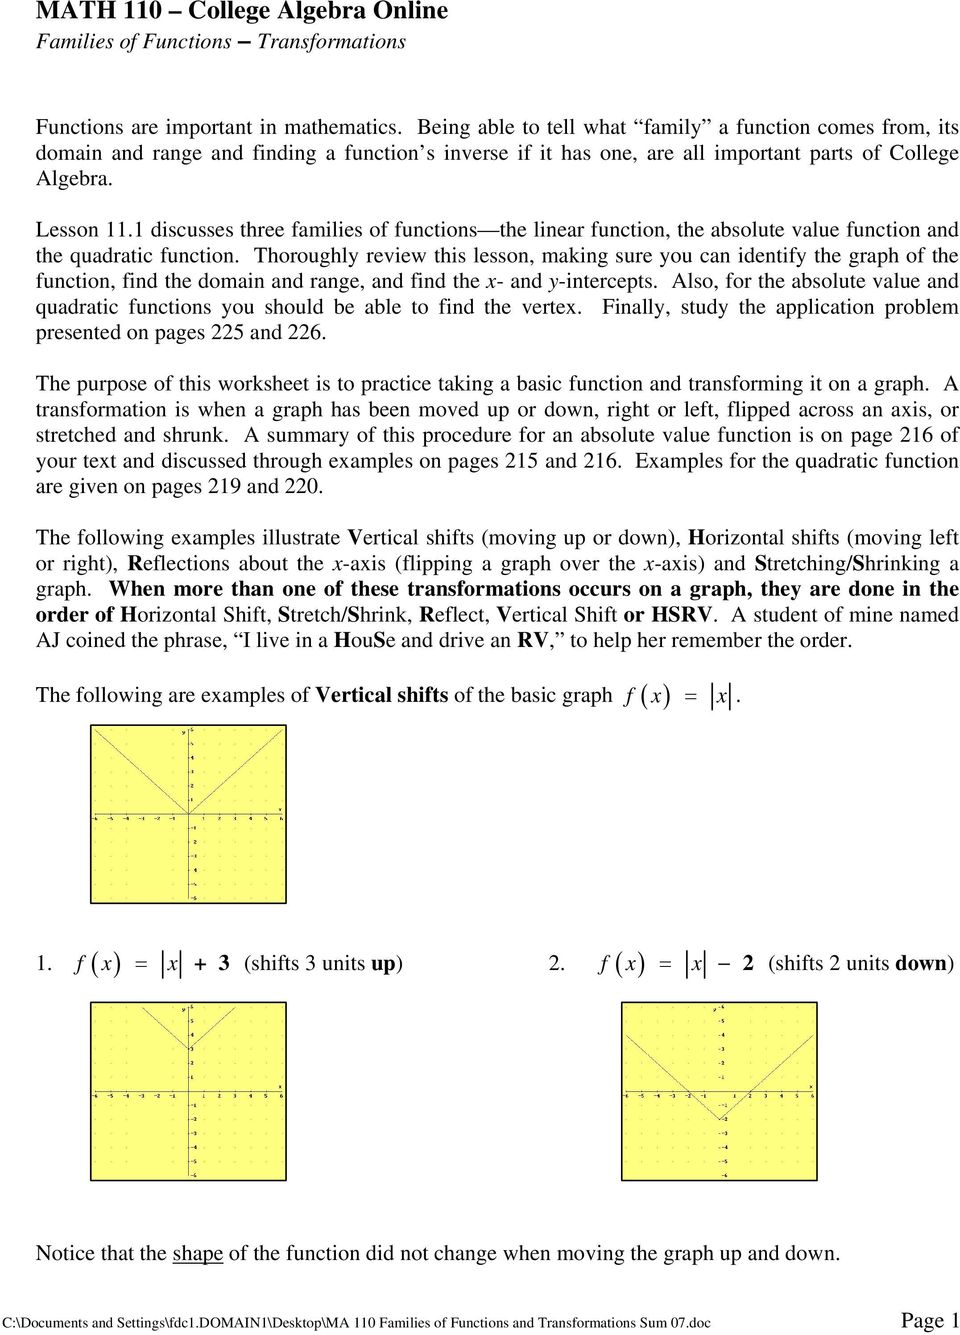 Math  College Algebra Online Families Of Functions   Discusses Three Families Of Functions The Linear Function The Absolute  Value Function And The